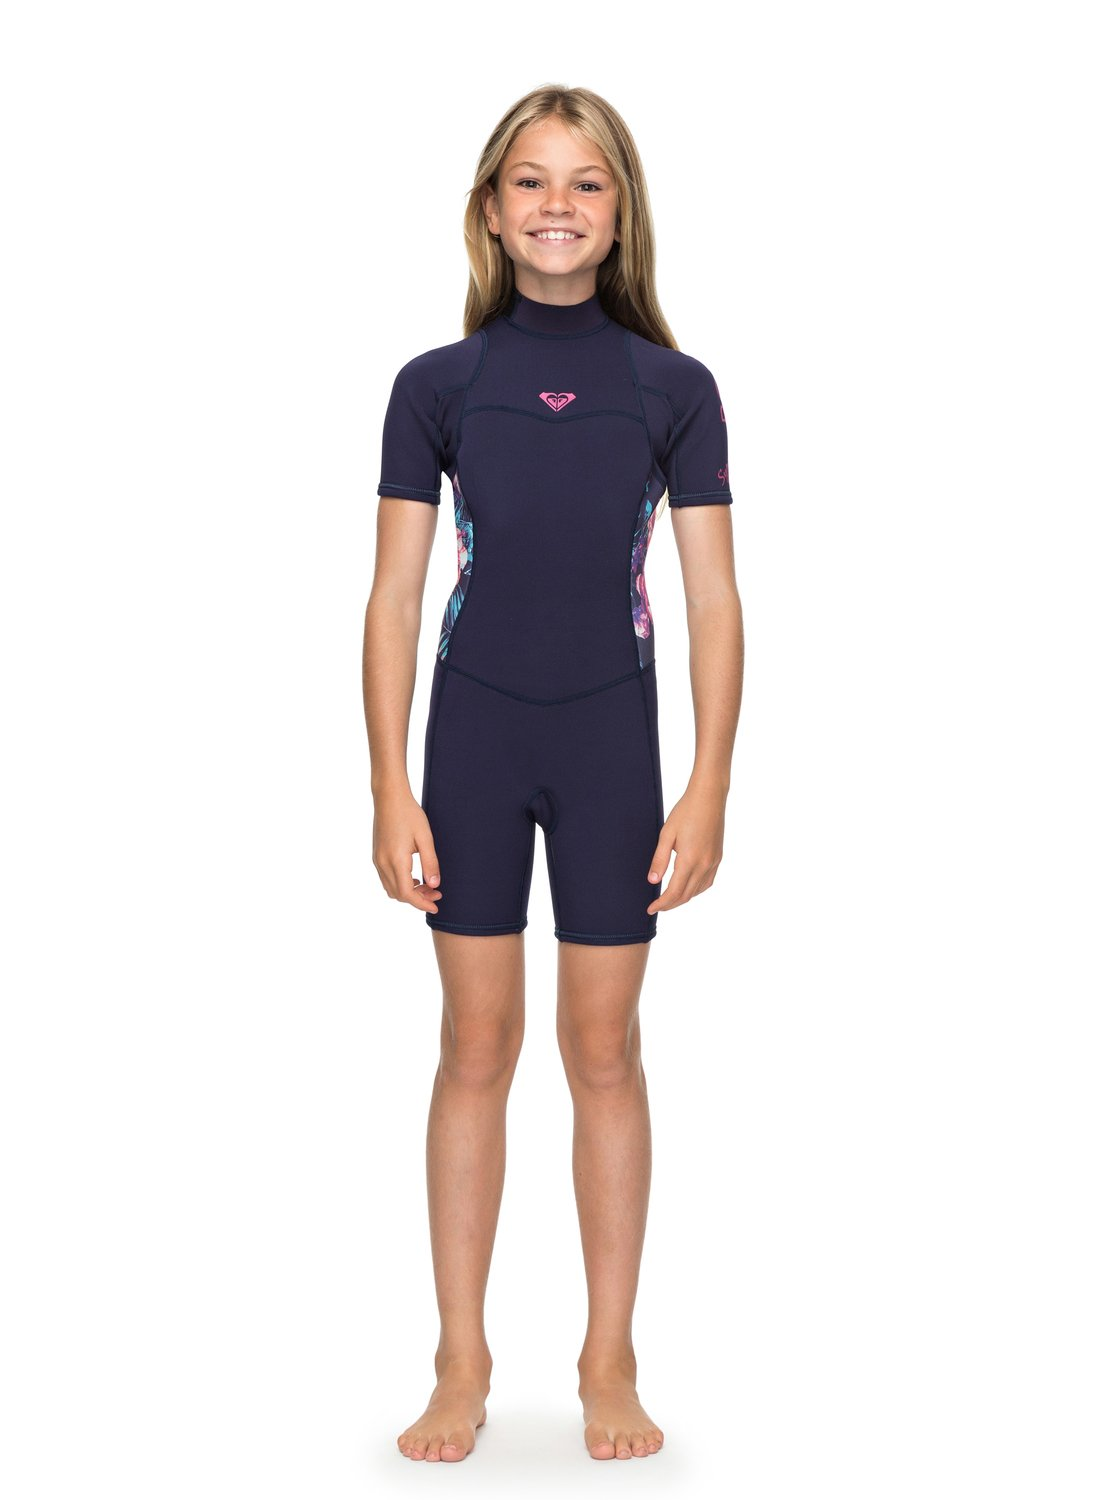 8dc4751f39 0 Girl s 7-14 2 2mm Syncro Series Short Sleeve Back Zip FLT Springsuit